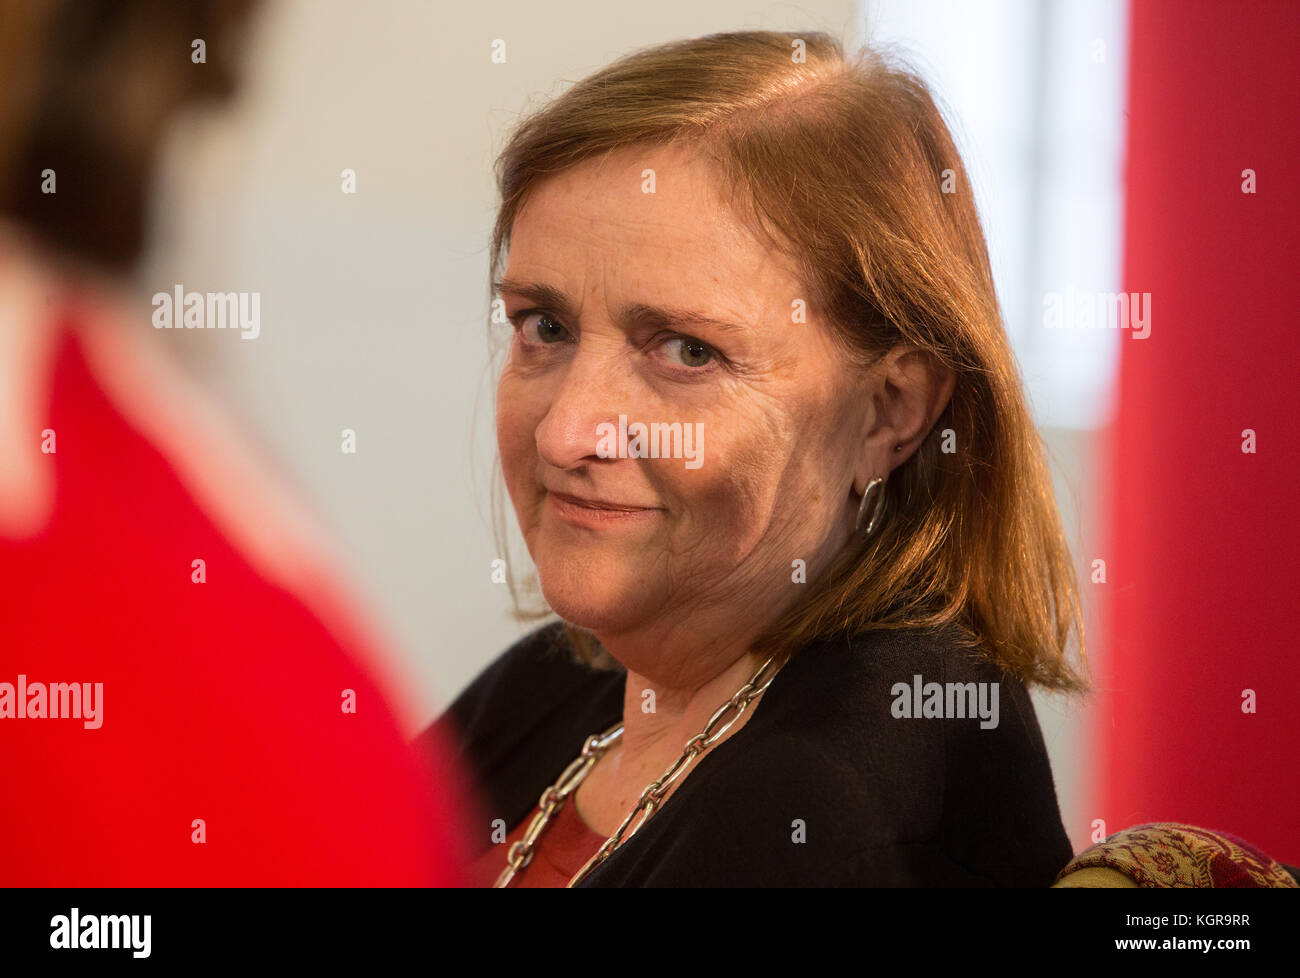 Emma Dent Coad, Labour MP for Kensington. Her constituency includes Grenfell Tower in North Kensington where the - Stock Image